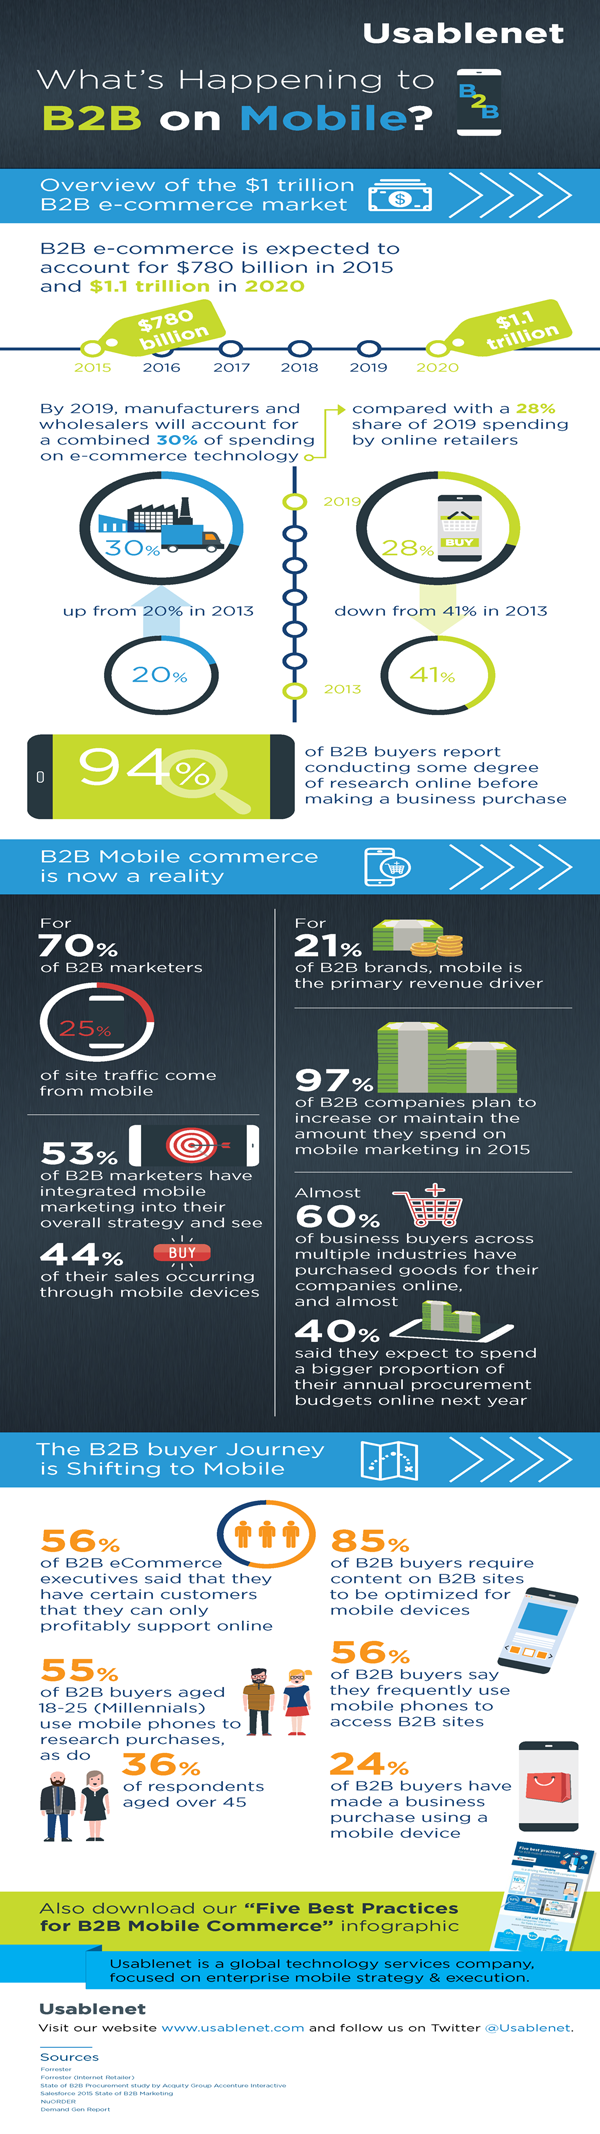 What's Happening to B2B on Mobile?